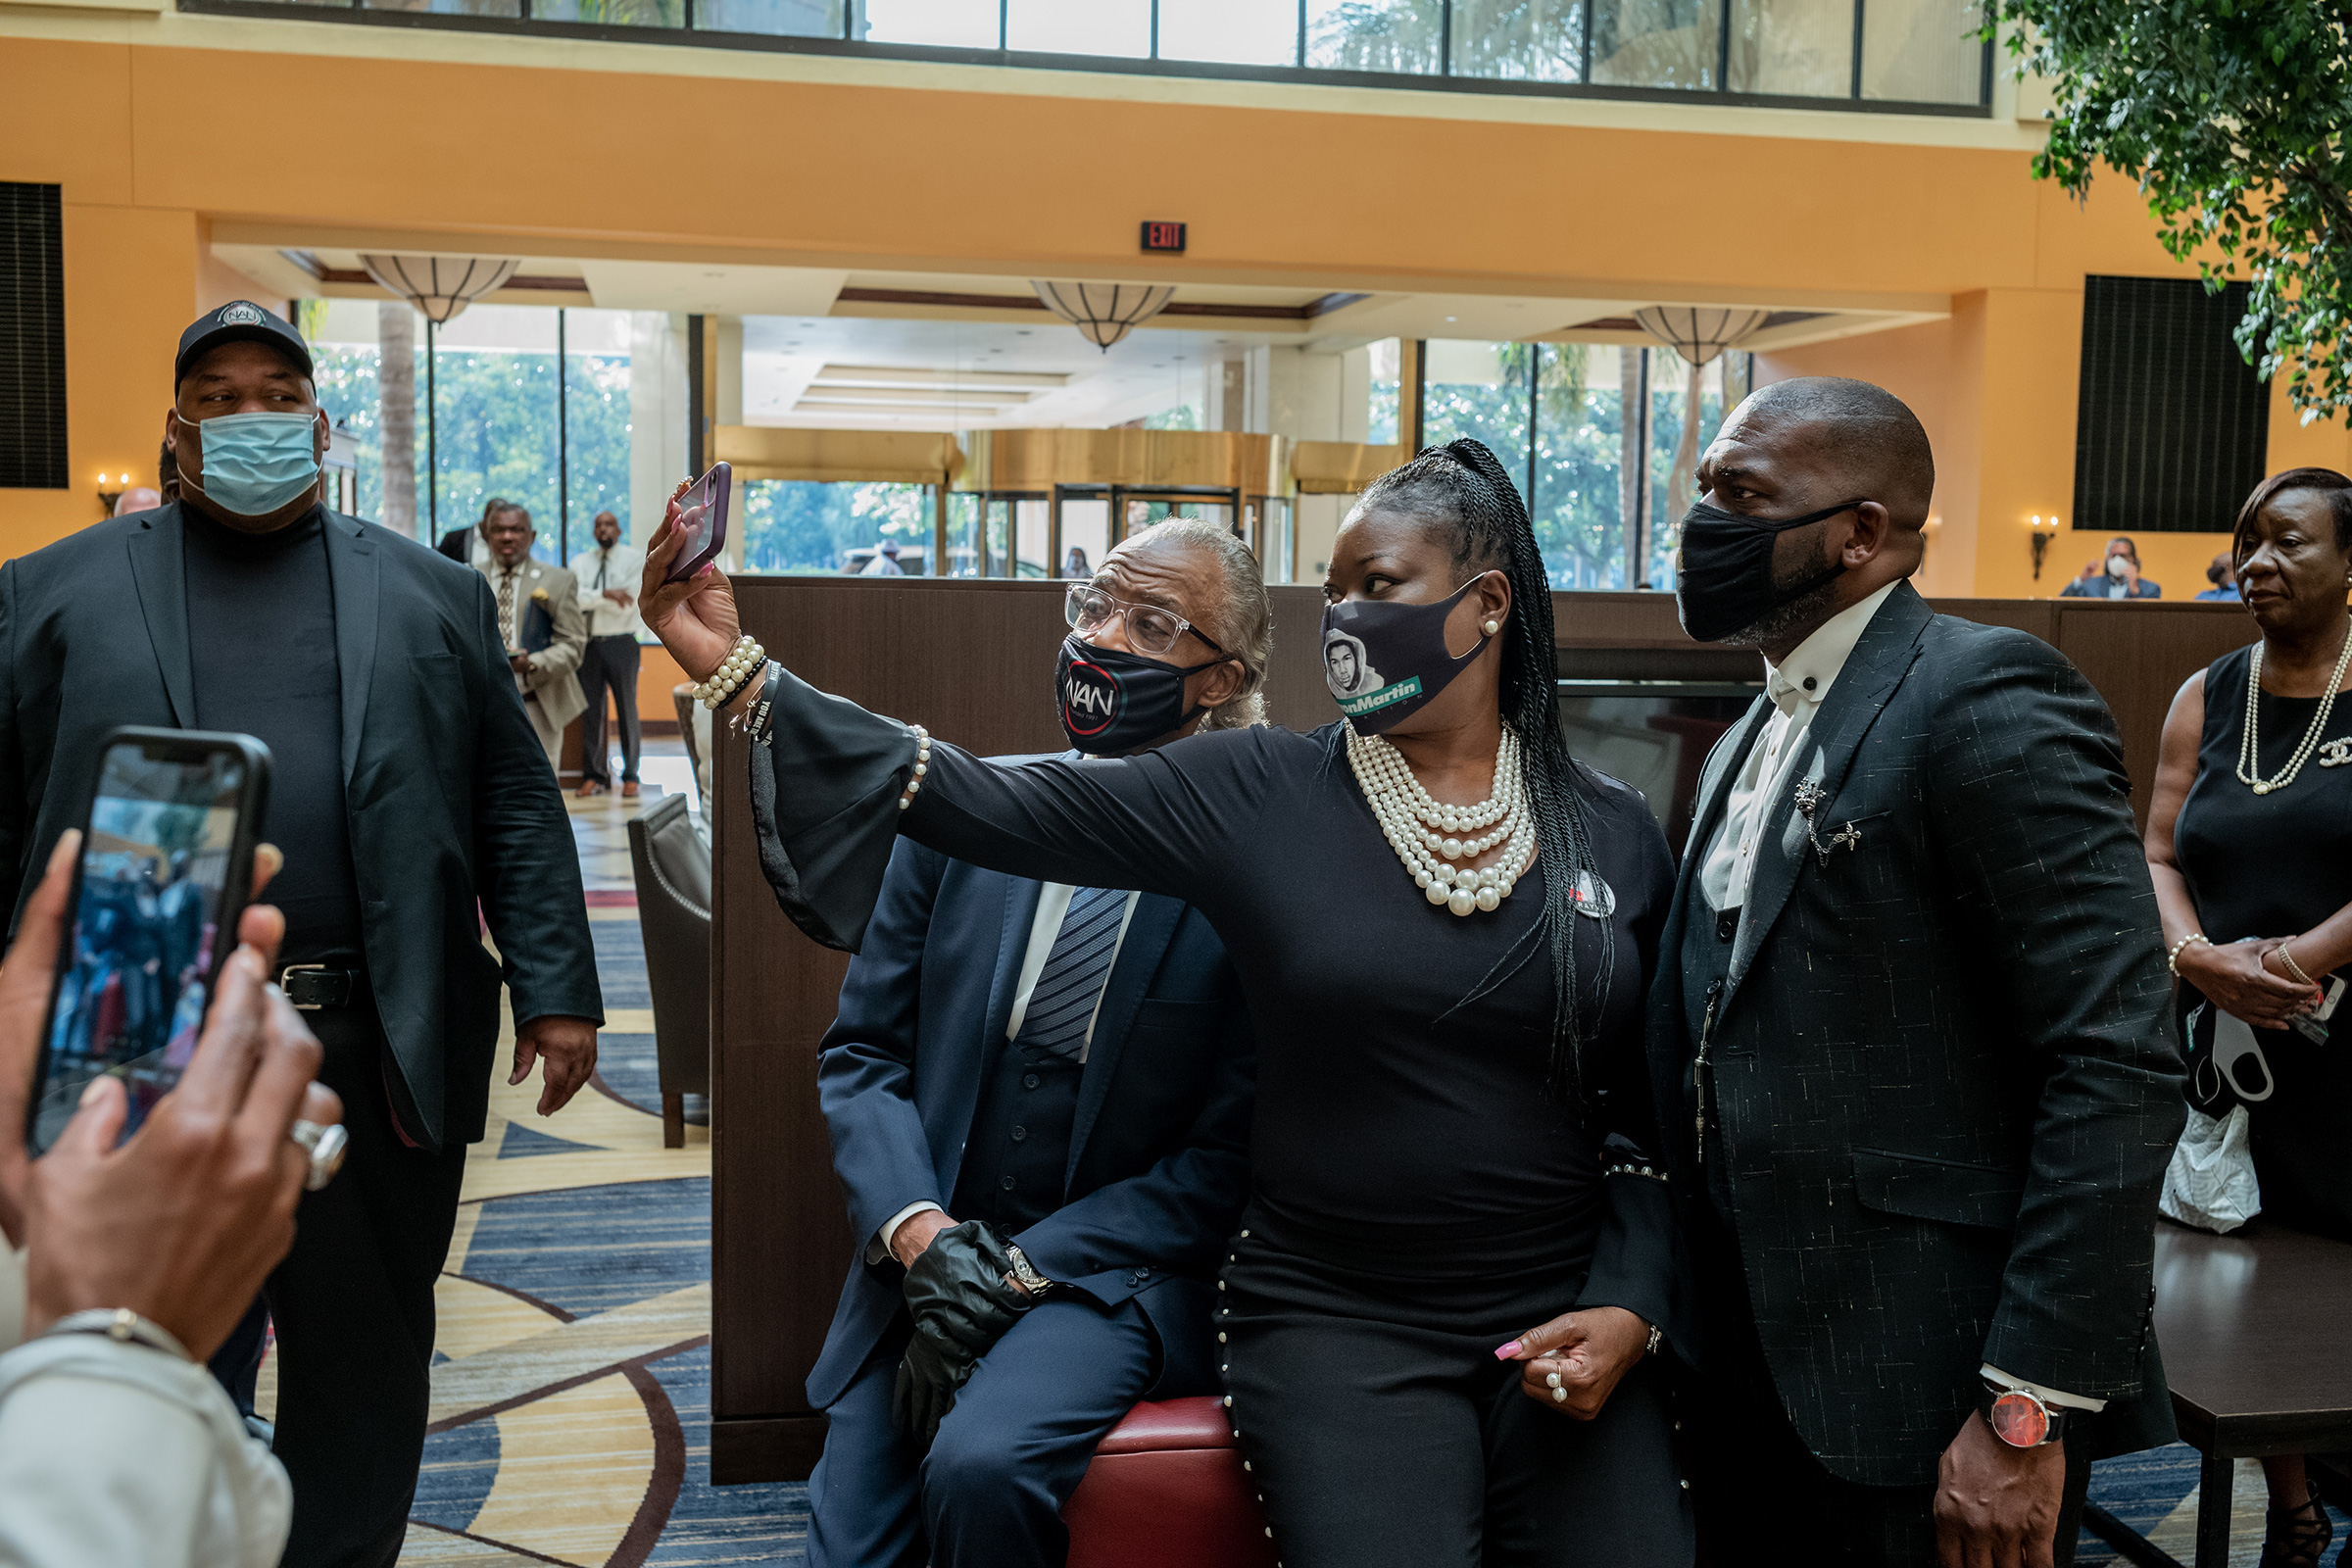 Rev. Al Sharpton takes a photograph with Sybrina Fulton and Pastor Jamal H Bryant before George Floyd's funeral on June 9, 2020.